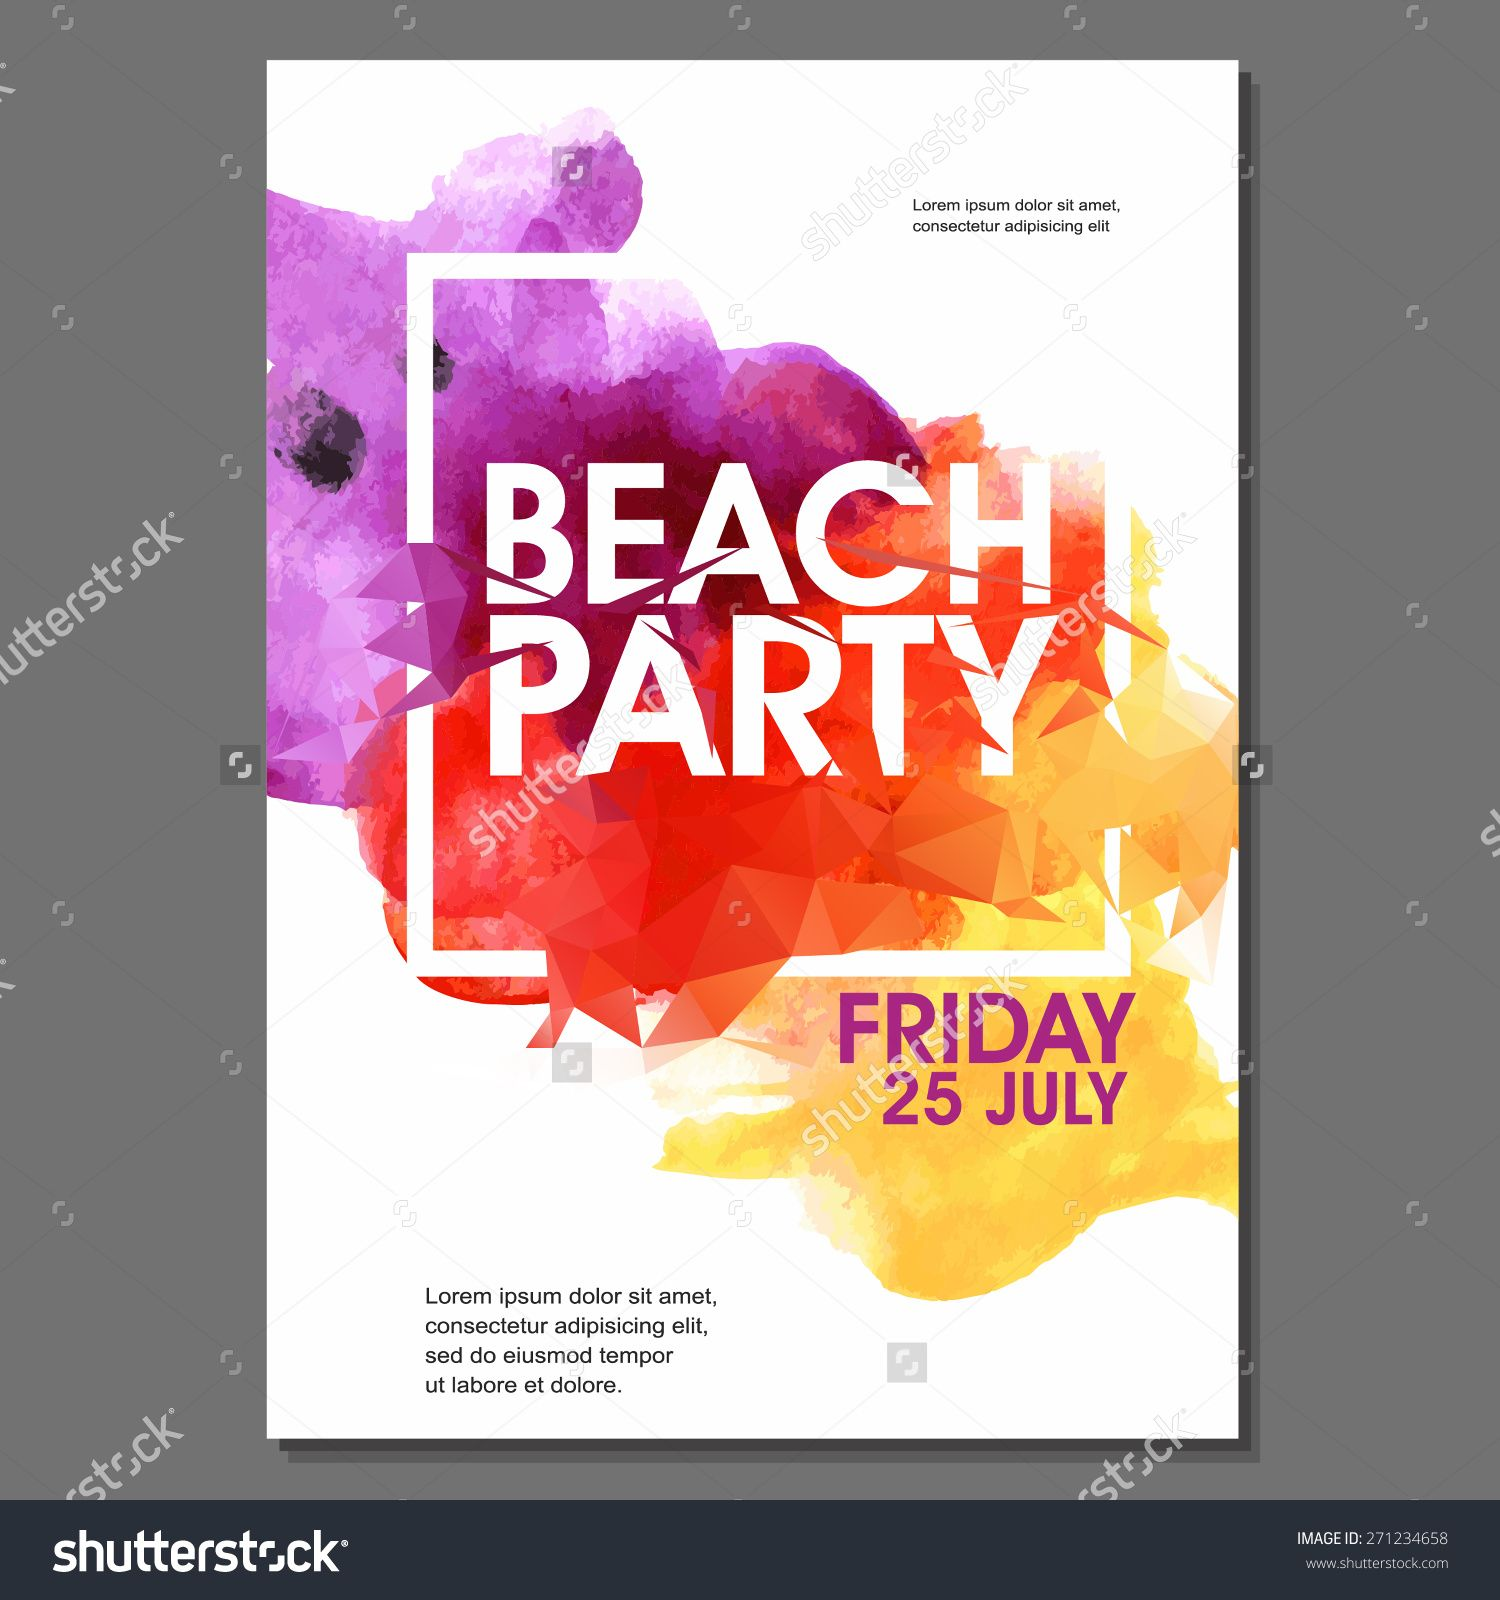 summer night party vector flyer template eps design polygonal summer night party vector flyer template eps10 design polygonal graphic watercolor spot